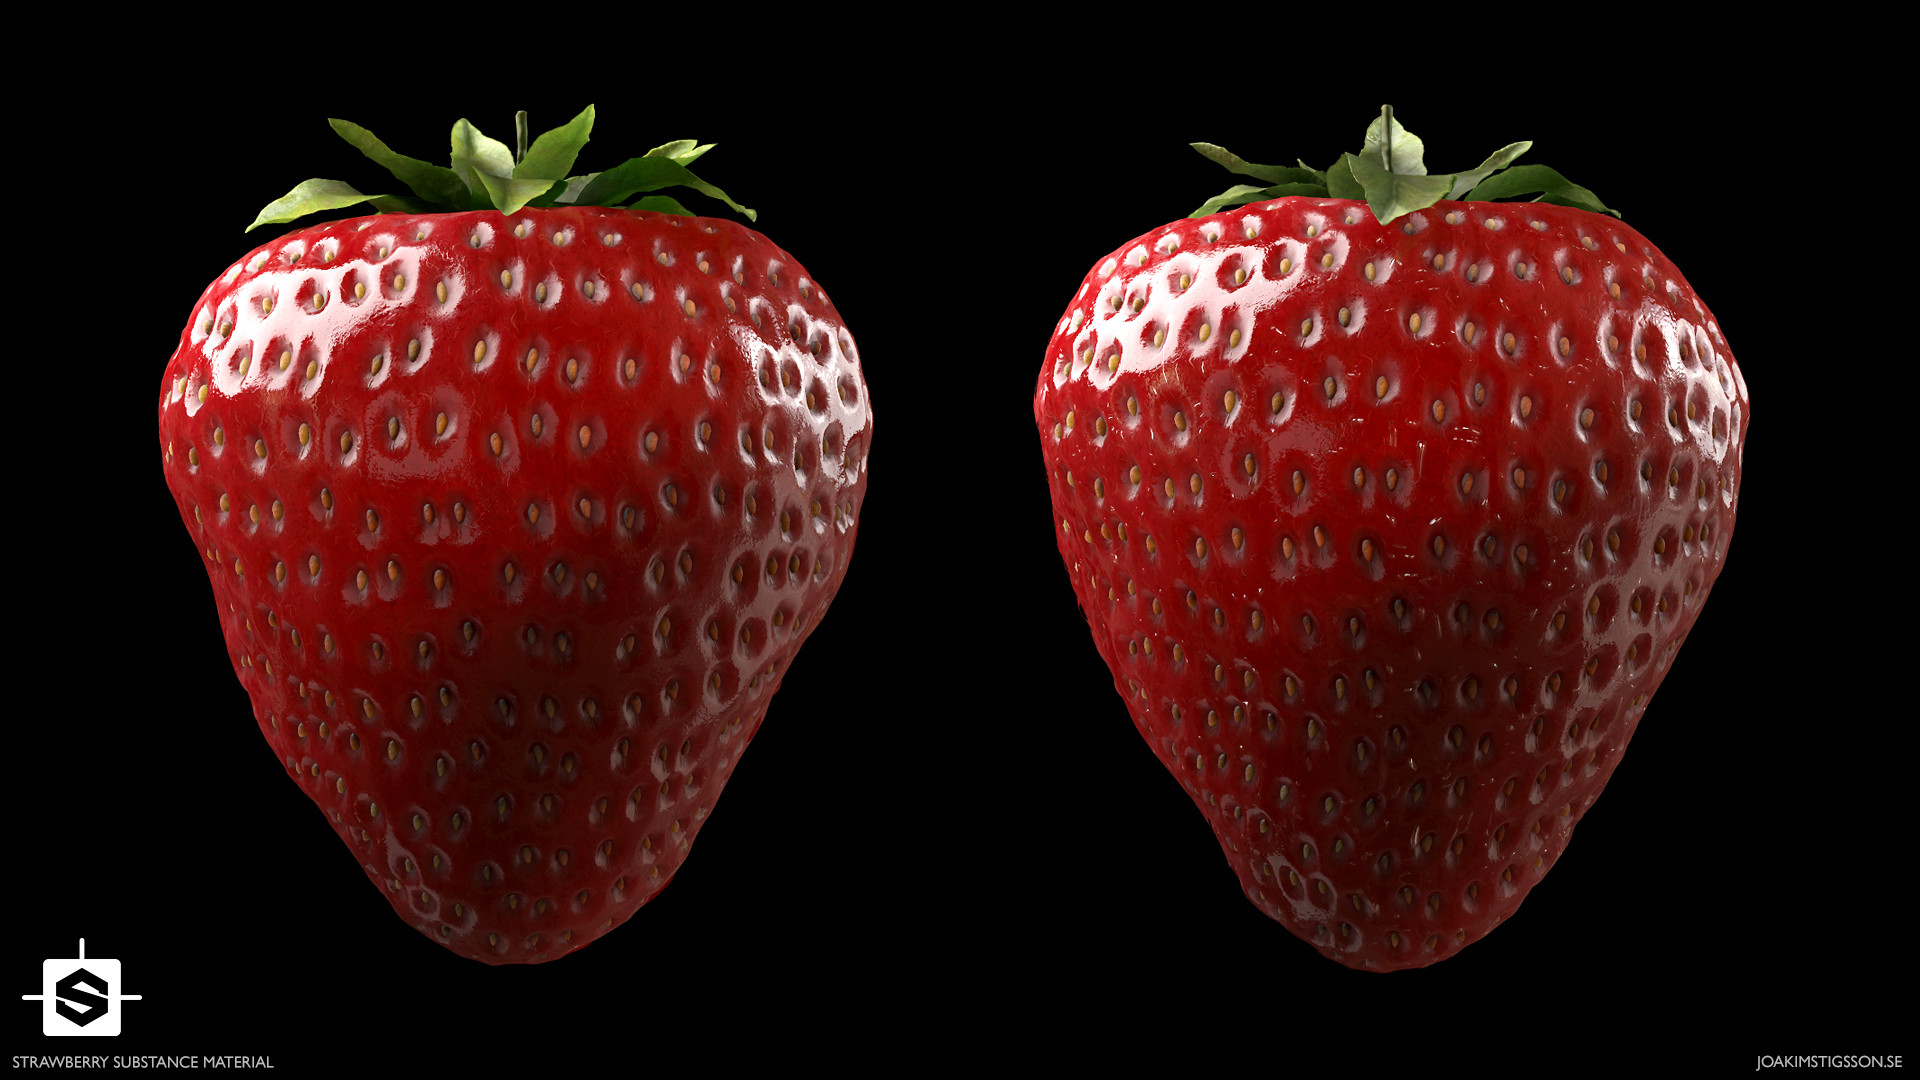 Joakim stigsson strawberry 01 render